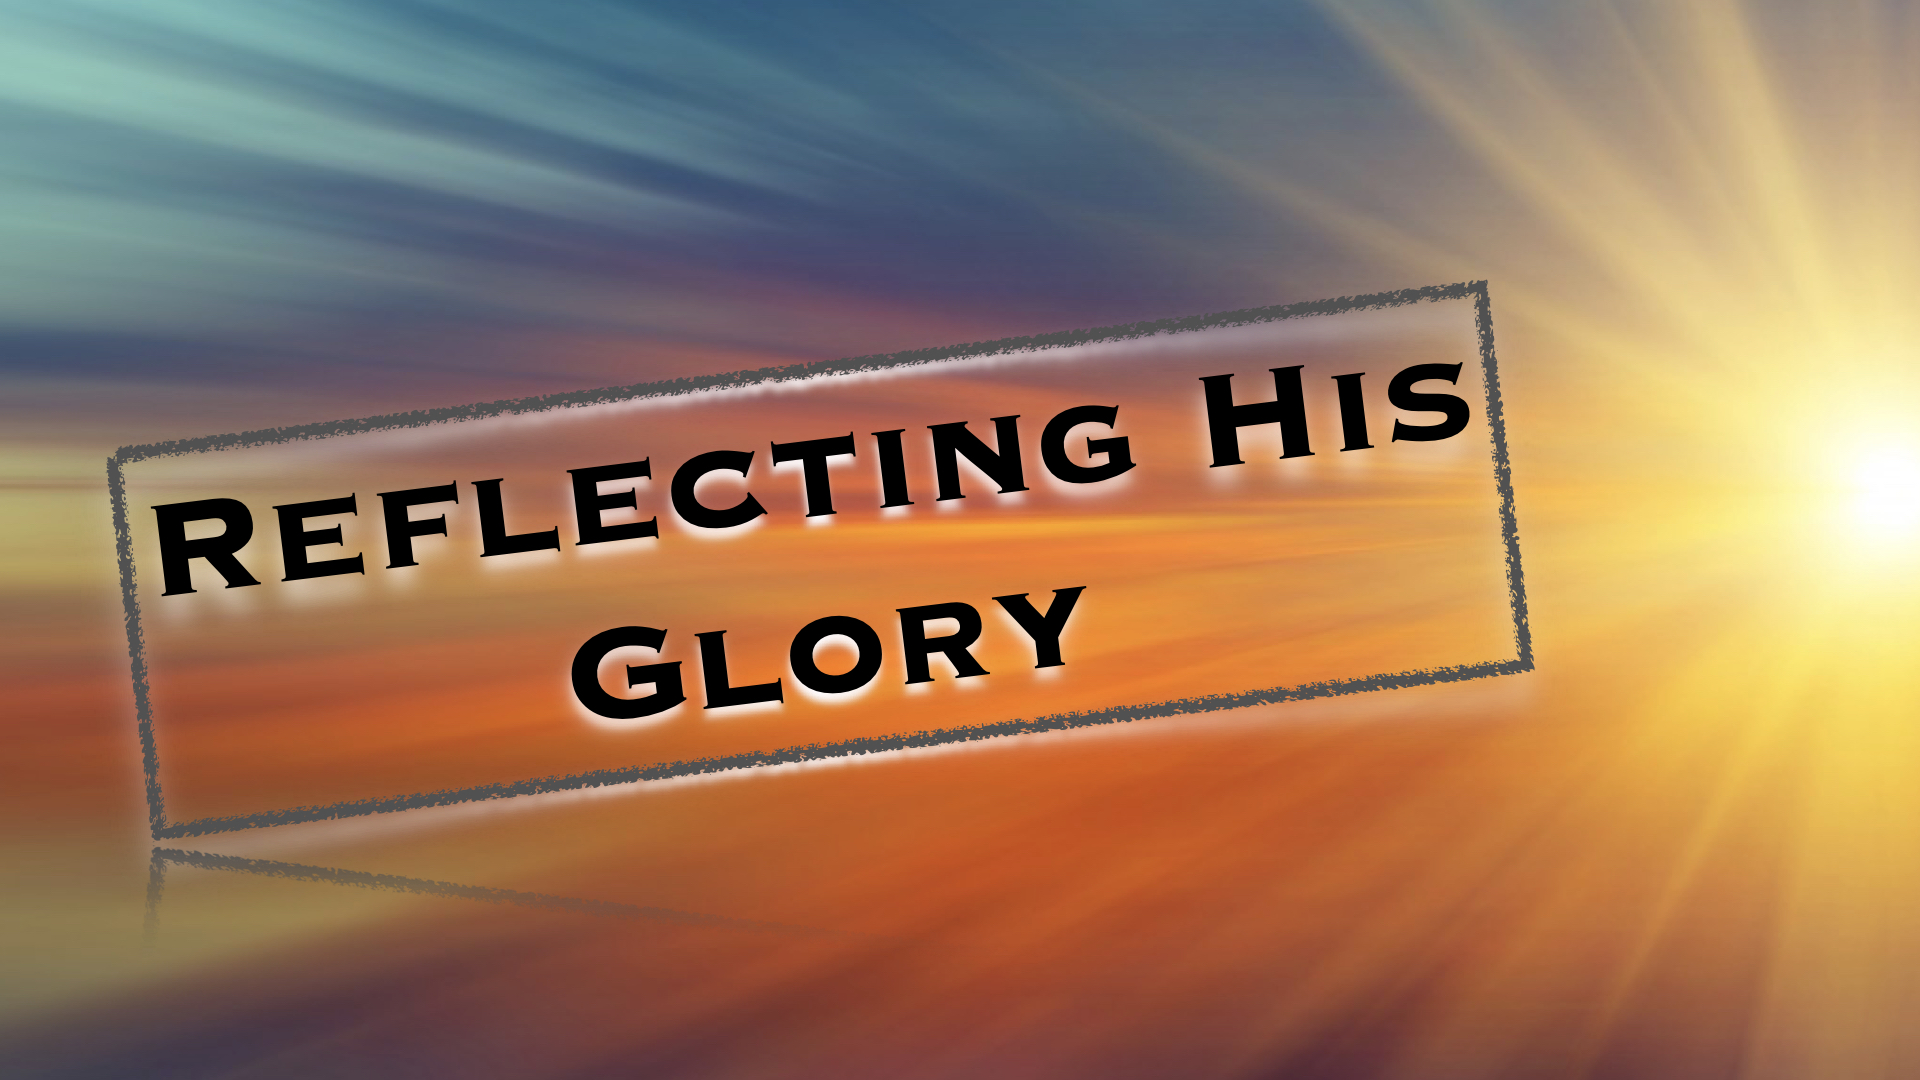 Reflecting His Glory  11172019 83421 AM